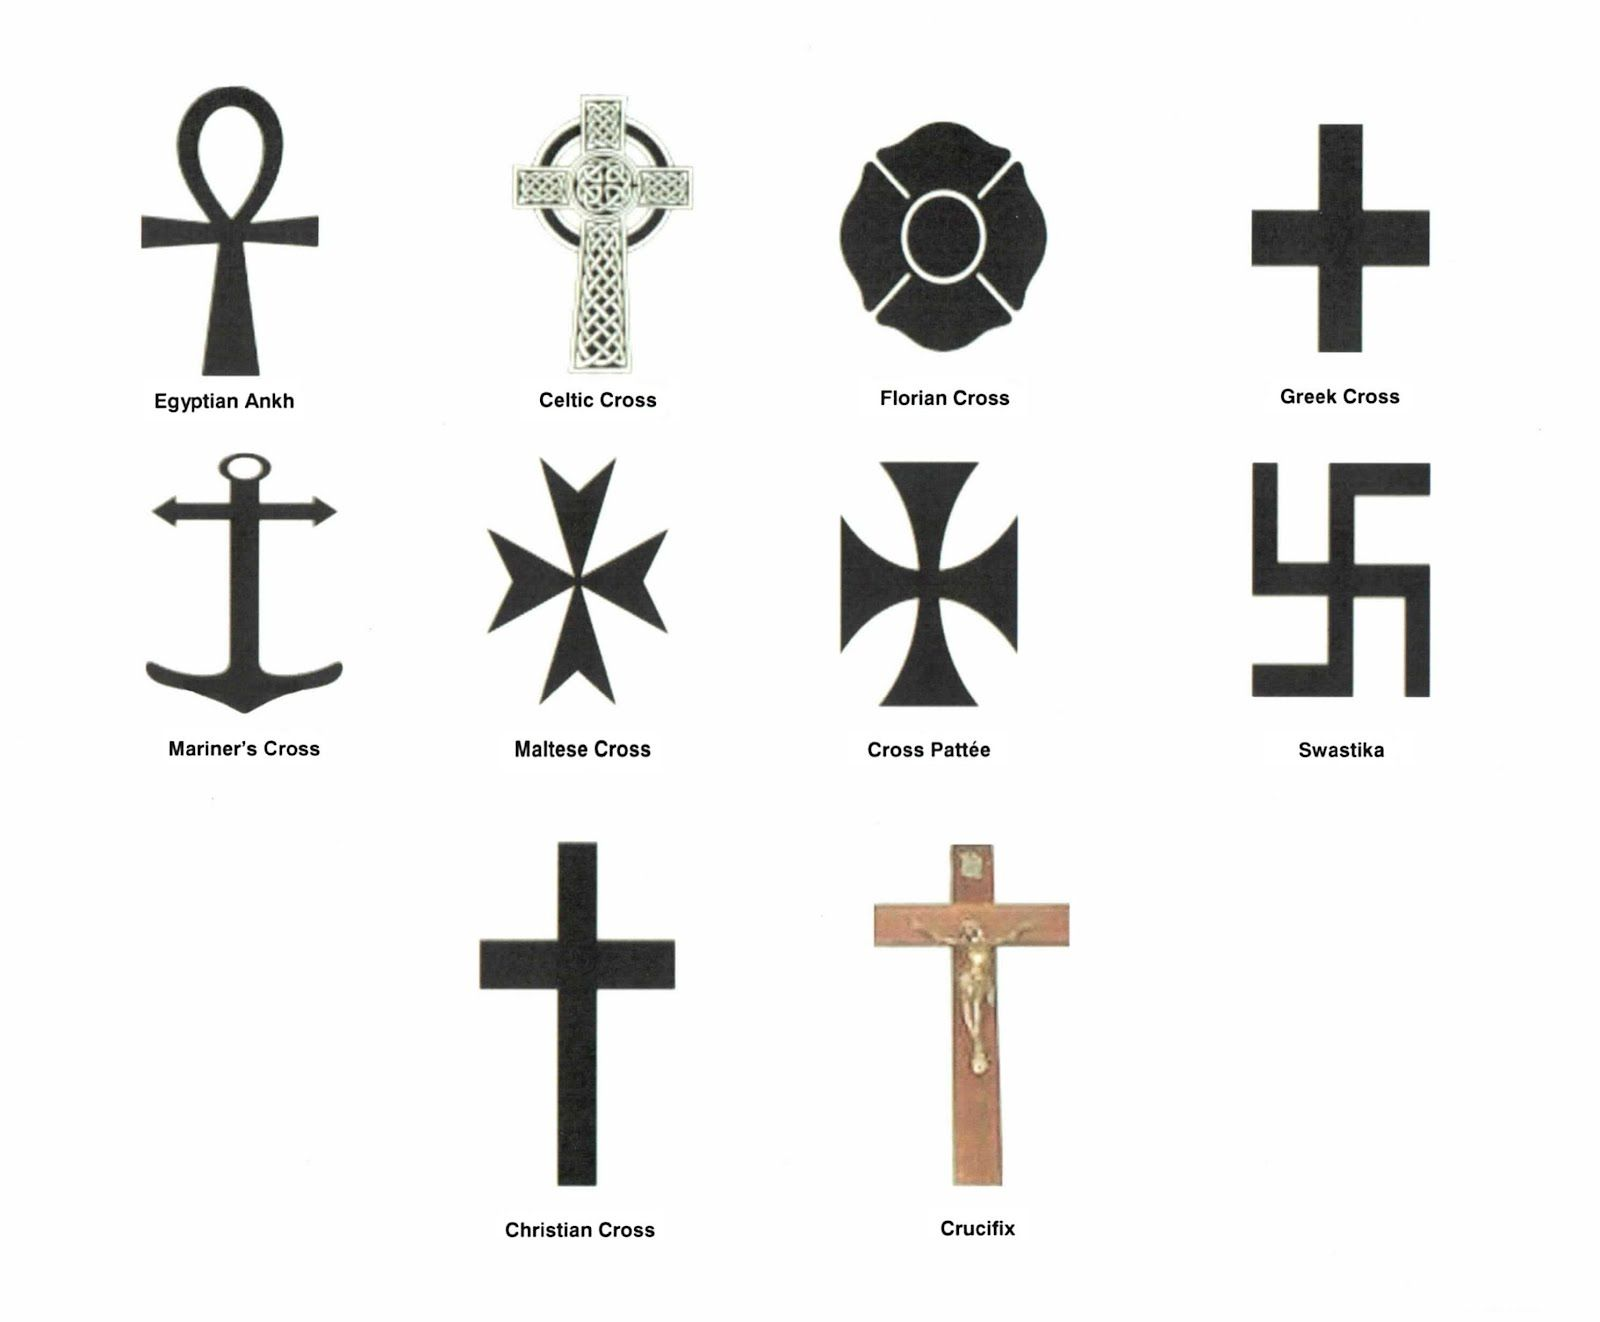 The most universally known symbol is the cross yet there isnt symbols biocorpaavc